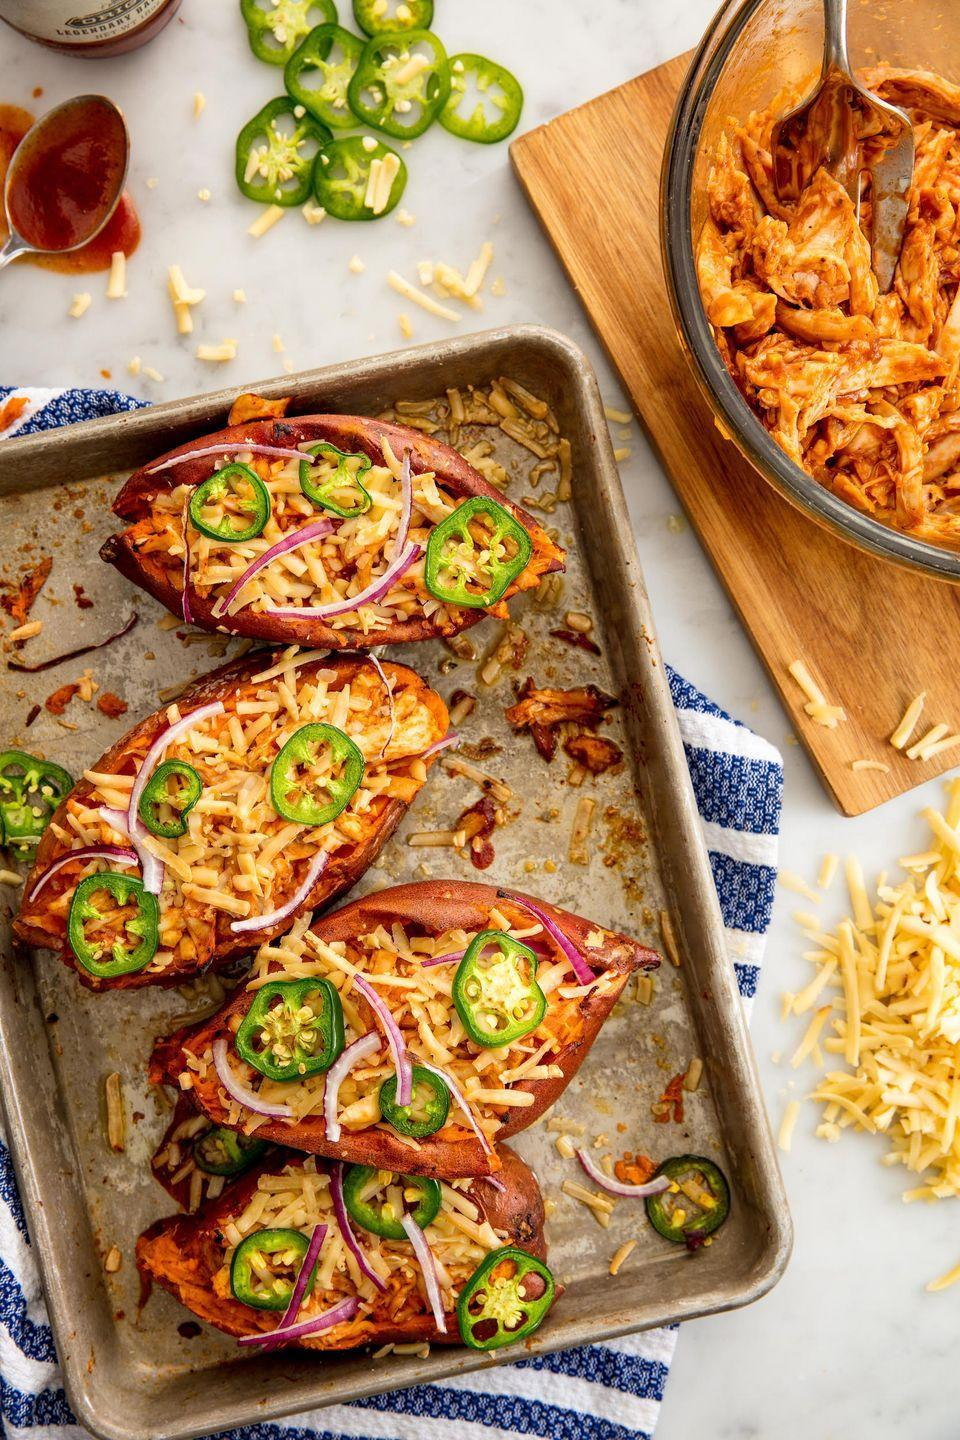 """<p>These twice-baked potatoes are loaded with the makings of a full chicken dinner.</p><p>Get the recipe from <a href=""""https://www.delish.com/cooking/recipe-ideas/recipes/a49187/barbecue-chicken-sweet-potatoes-recipe/"""" rel=""""nofollow noopener"""" target=""""_blank"""" data-ylk=""""slk:Delish"""" class=""""link rapid-noclick-resp"""">Delish</a>.</p>"""